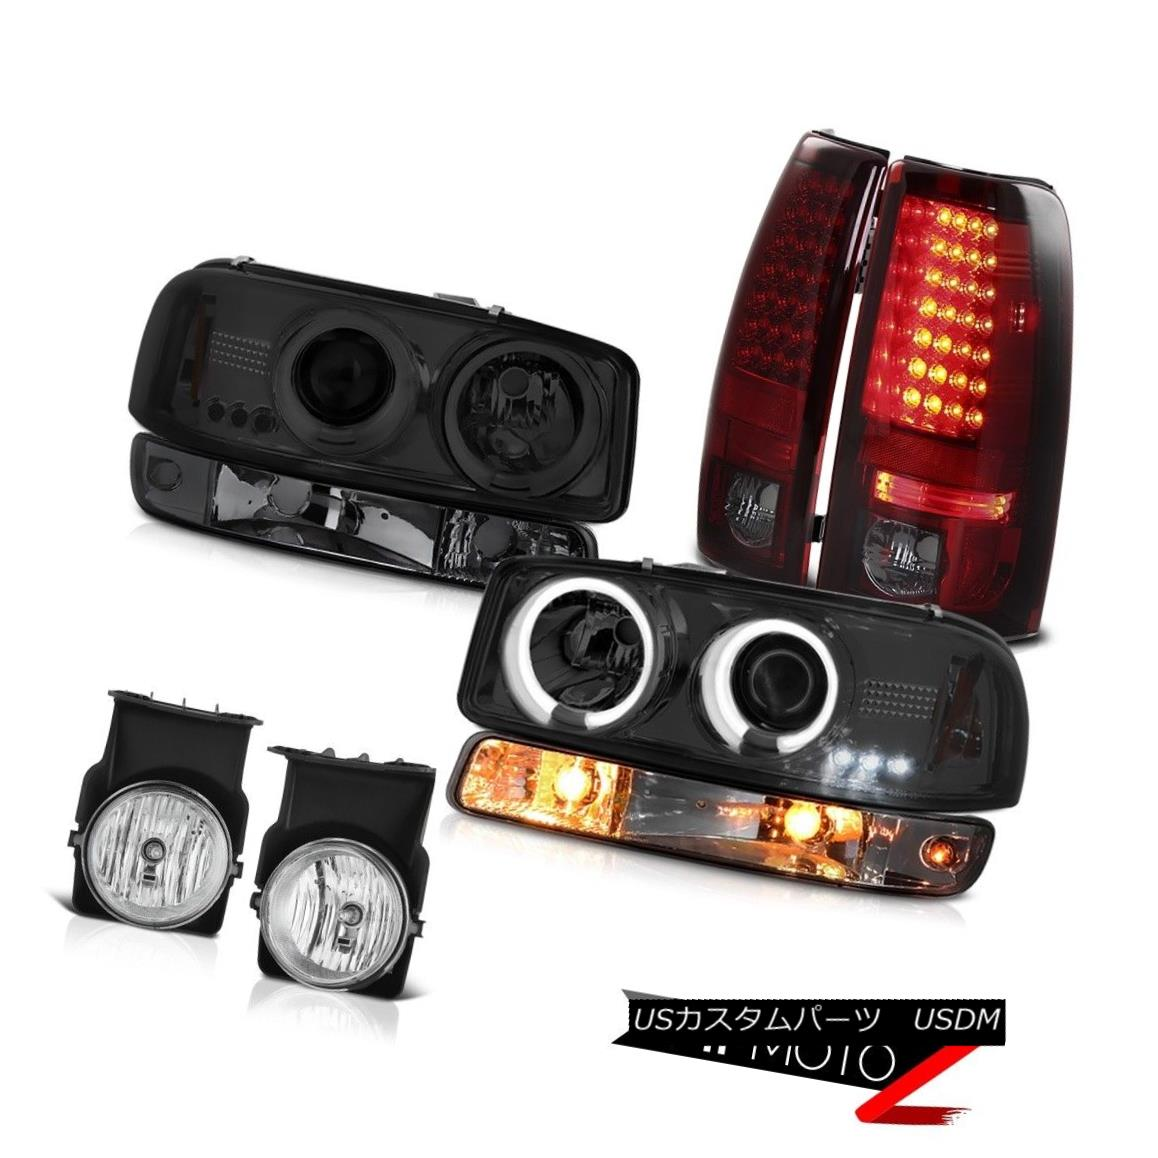 テールライト 03-06 GMC Sierra Foglamps smoked red smd tail lamps bumper light ccfl Headlamps 03-06 GMC Sierra Foglampsは赤いsmdテールランプのバンパーライトを吸ったccflヘッドランプ